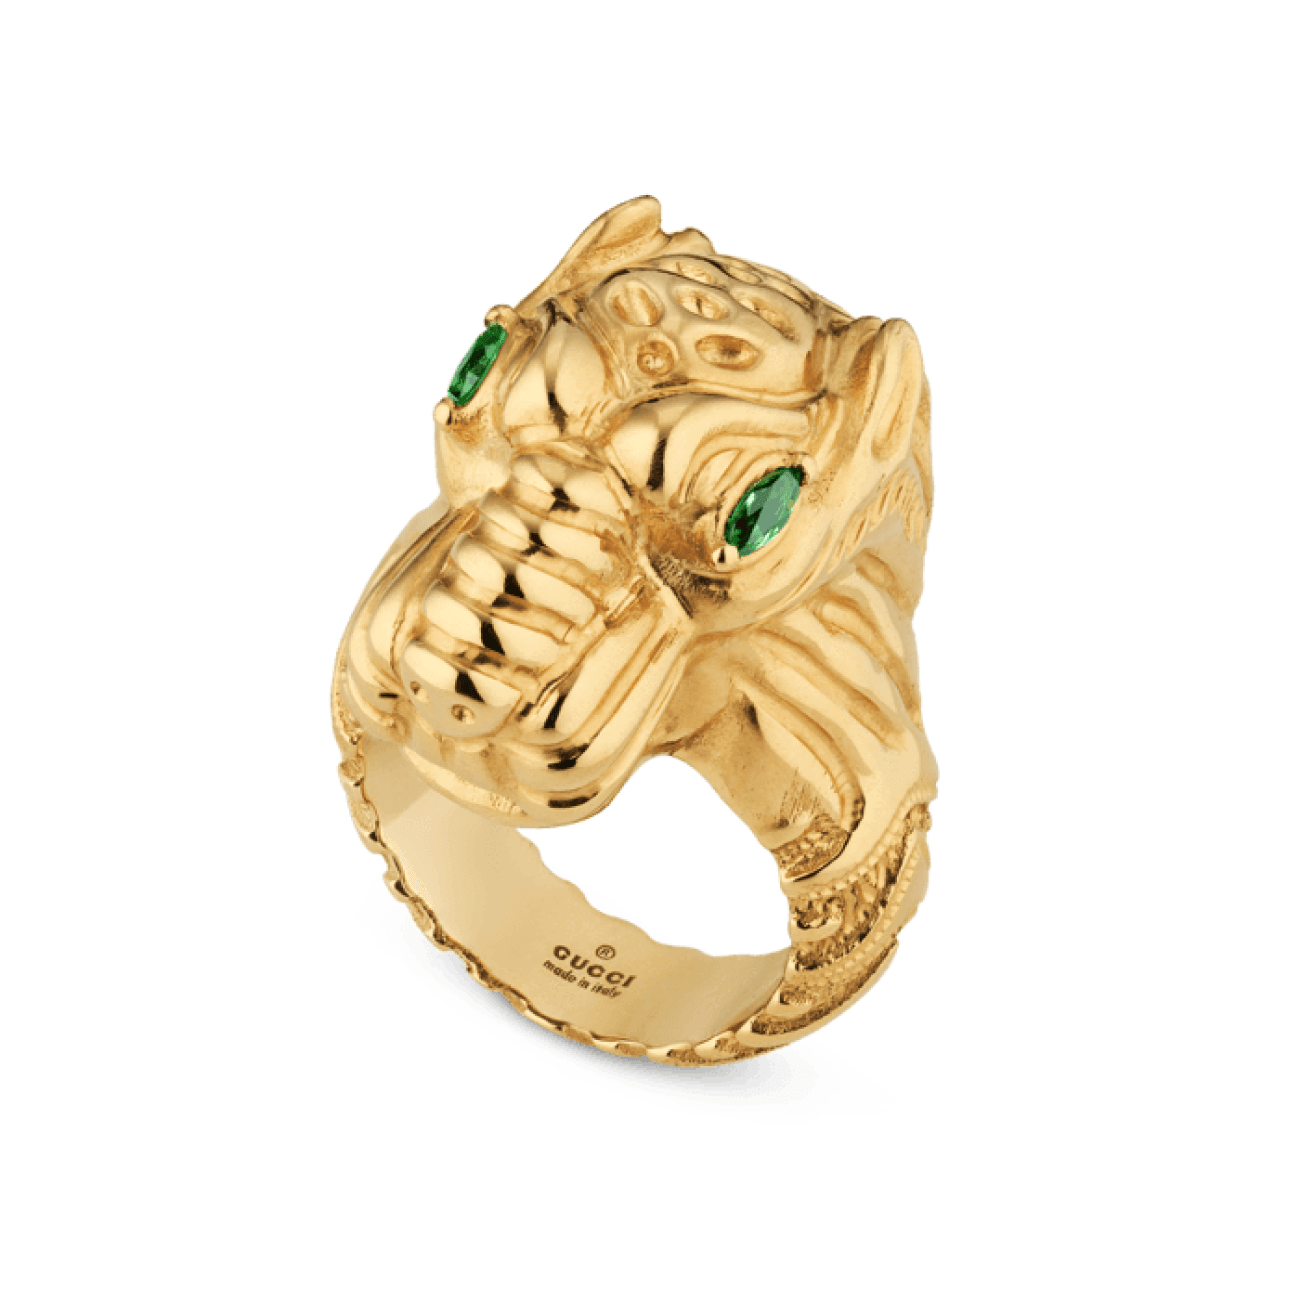 Gucci Jewelry - Dionysus 24mm tsavorite ring YBC502475001013 YG JEWL | Manfredi Jewels